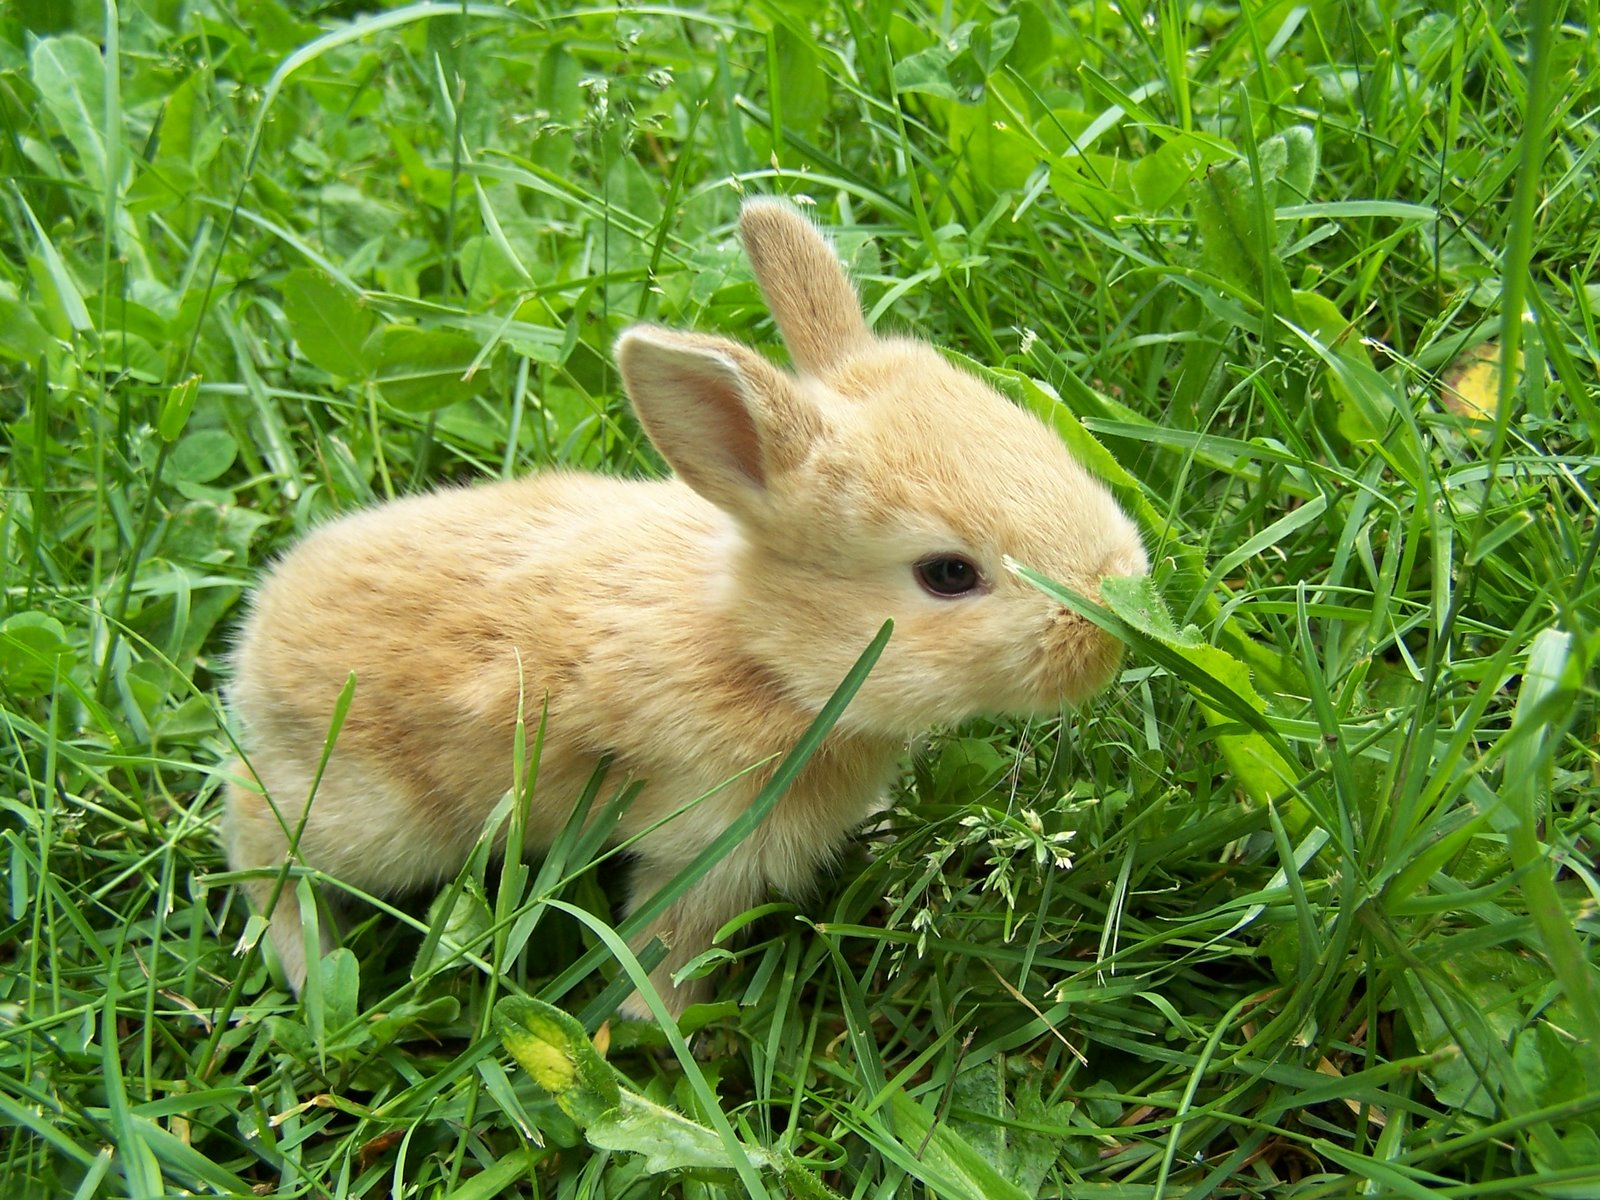 central wallpaper cute little rabbits hd wallpapers